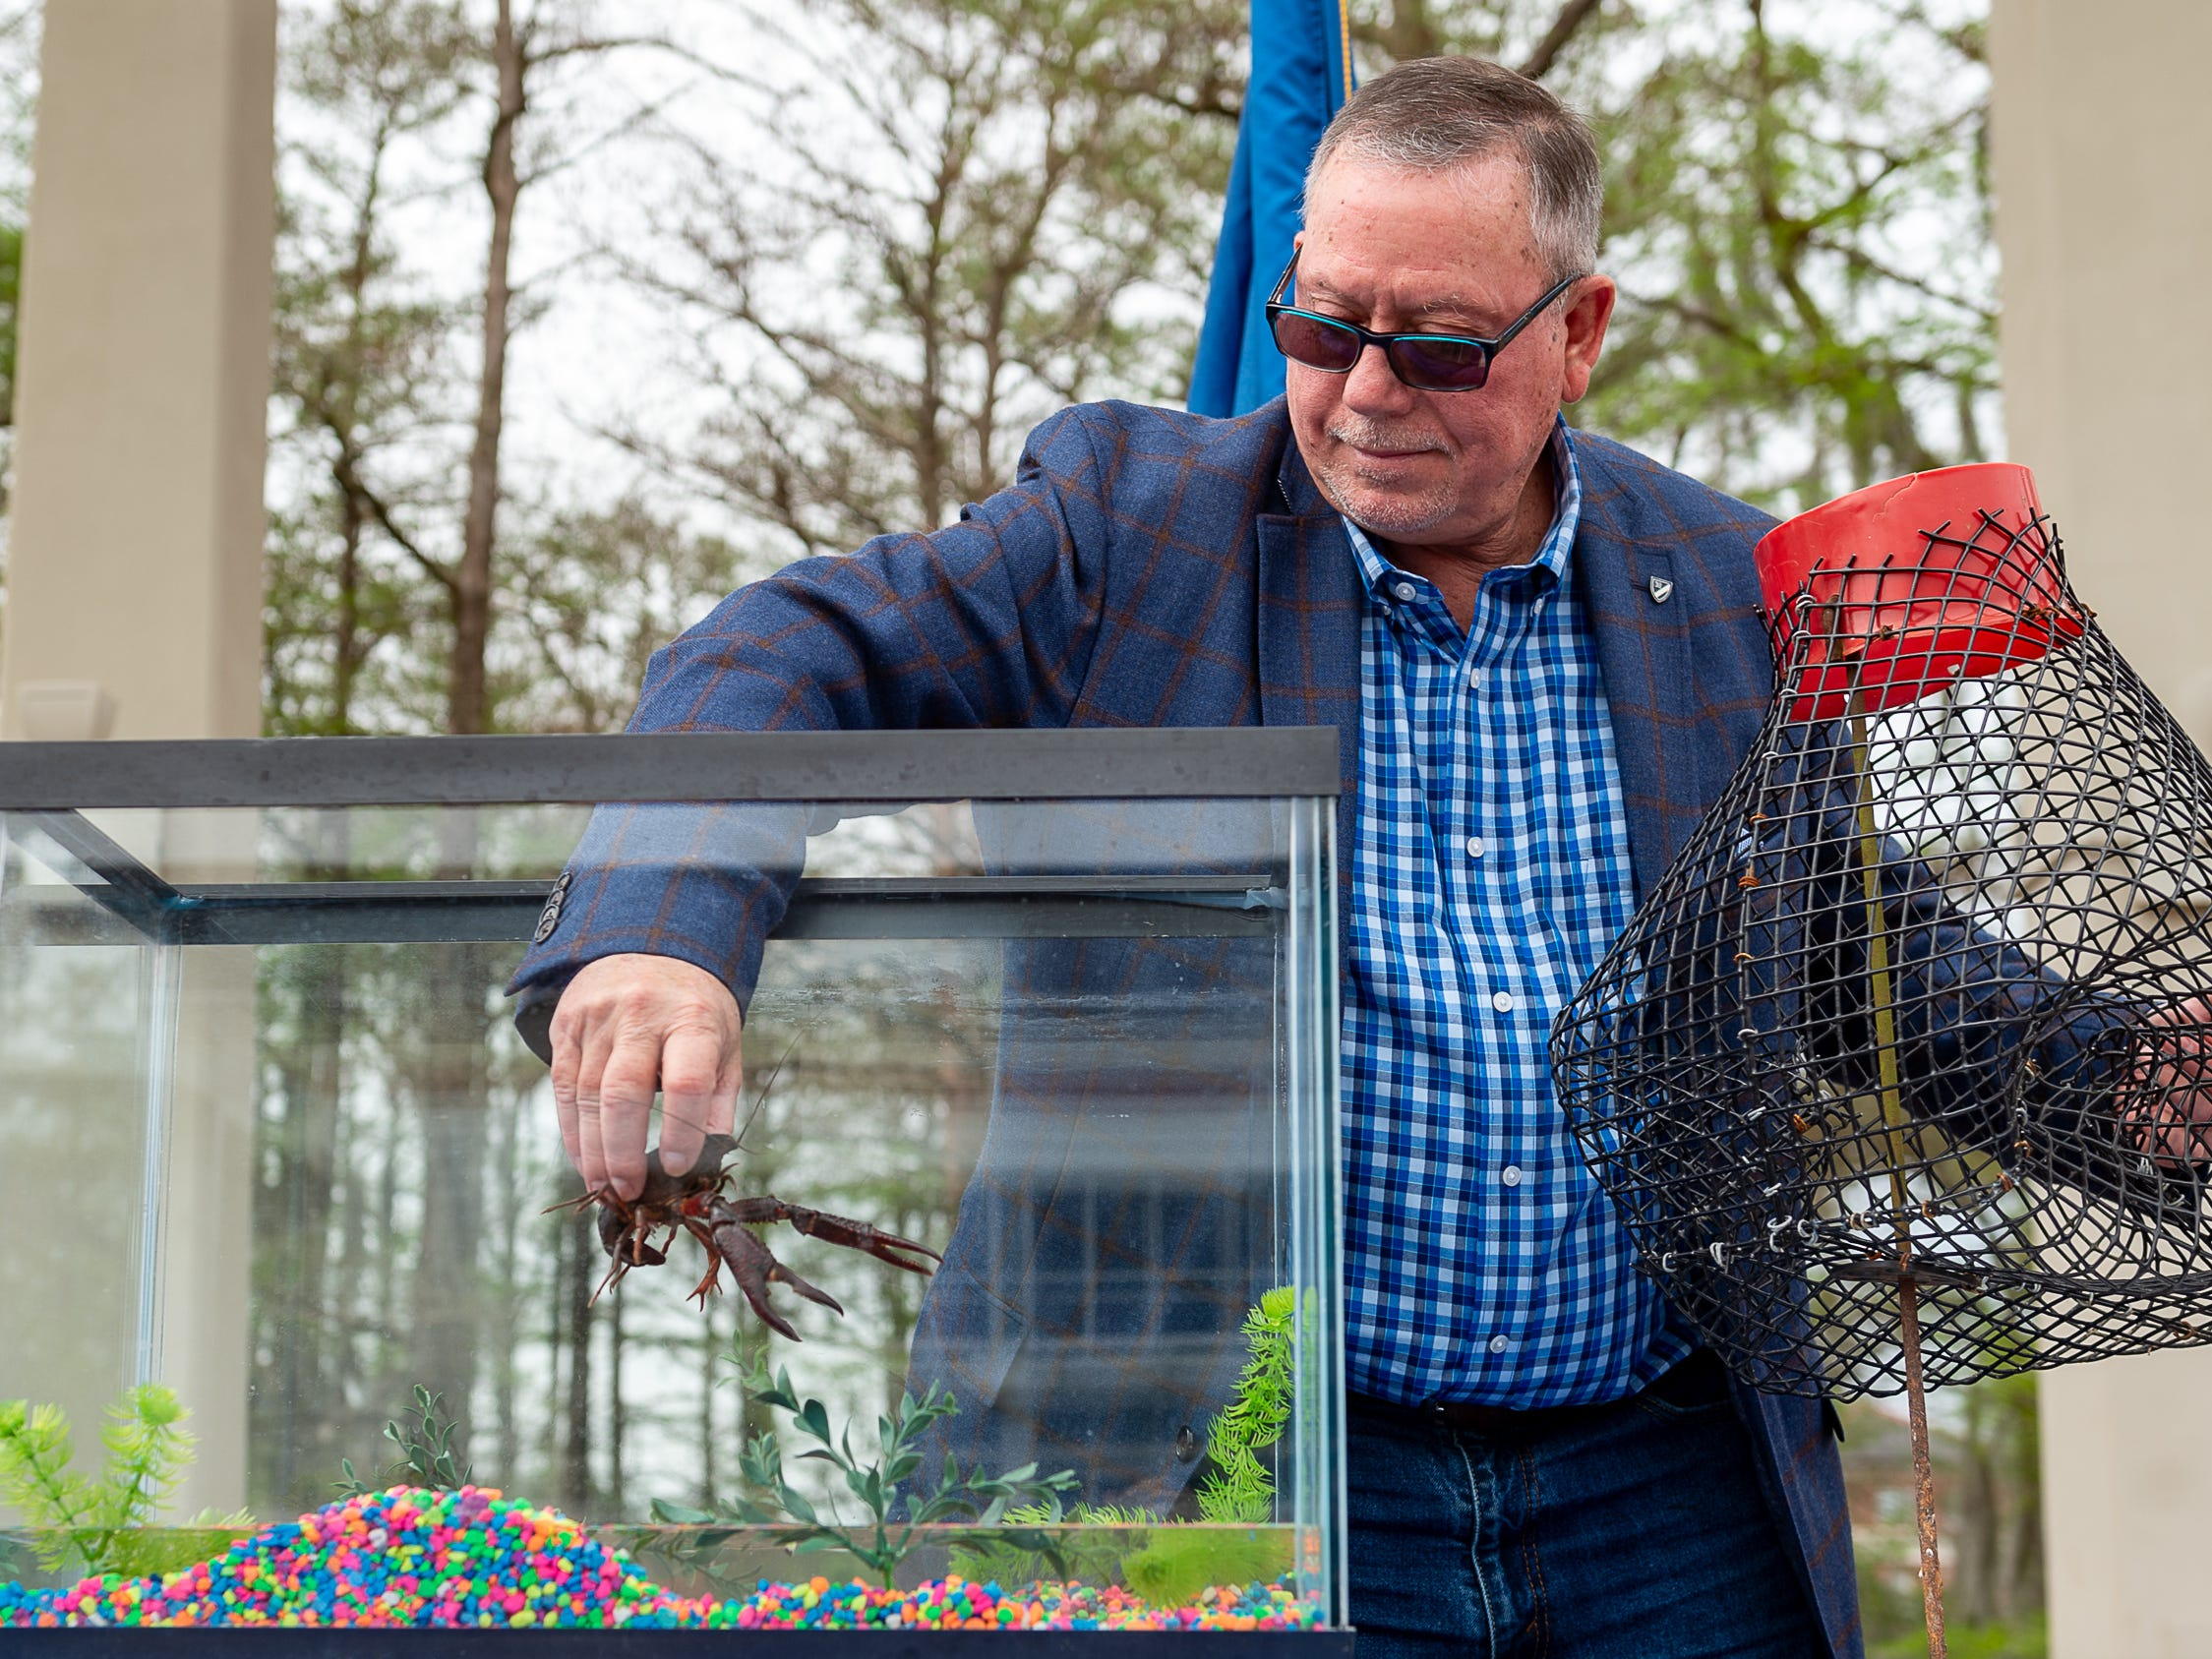 Louisiana Lieutenant Governor Billy Nungesser and the Louisiana Seafood Promotion and Marketing Board host the 3rd Annual Pardoning of the Crawfish at Cypress Lake Plaza on the campus of the University of Louisiana at Lafayette. Started in 2017 by Lt. Governor Nungesser, this unique event celebrates crawfish season in Louisiana and across the Gulf South. Tuesday, March 12, 2019. (Pictured-Barry Toups Louisiana Seafood Promotion and Marketing Board Crawfish Industry Representative)